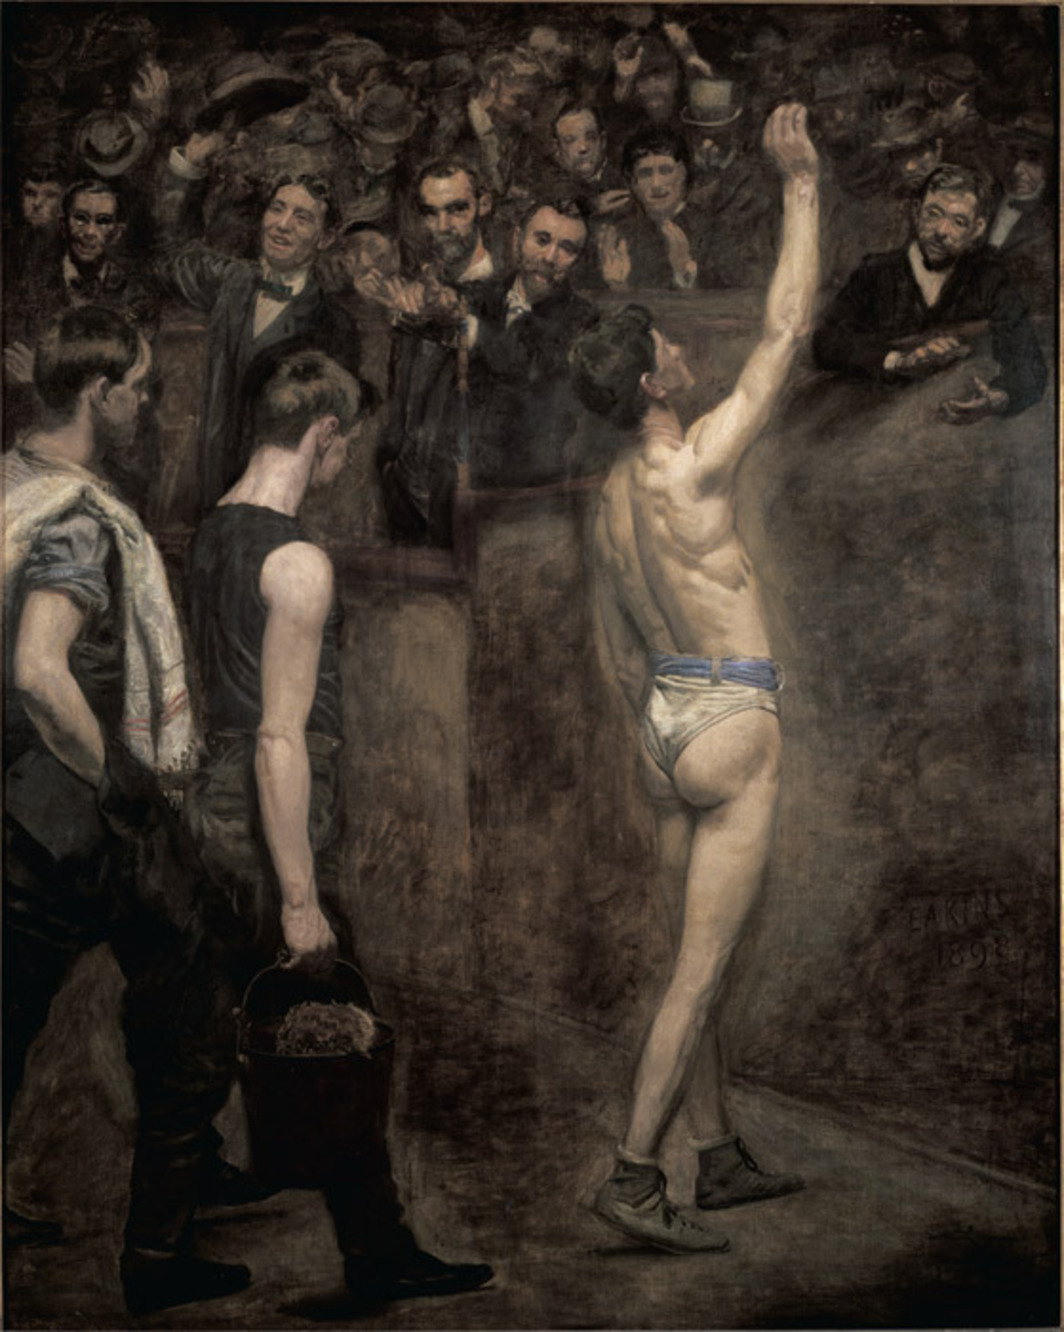 "Thomas Eakins, Salutat, 1898, 50 x 40"", oil on canvas."